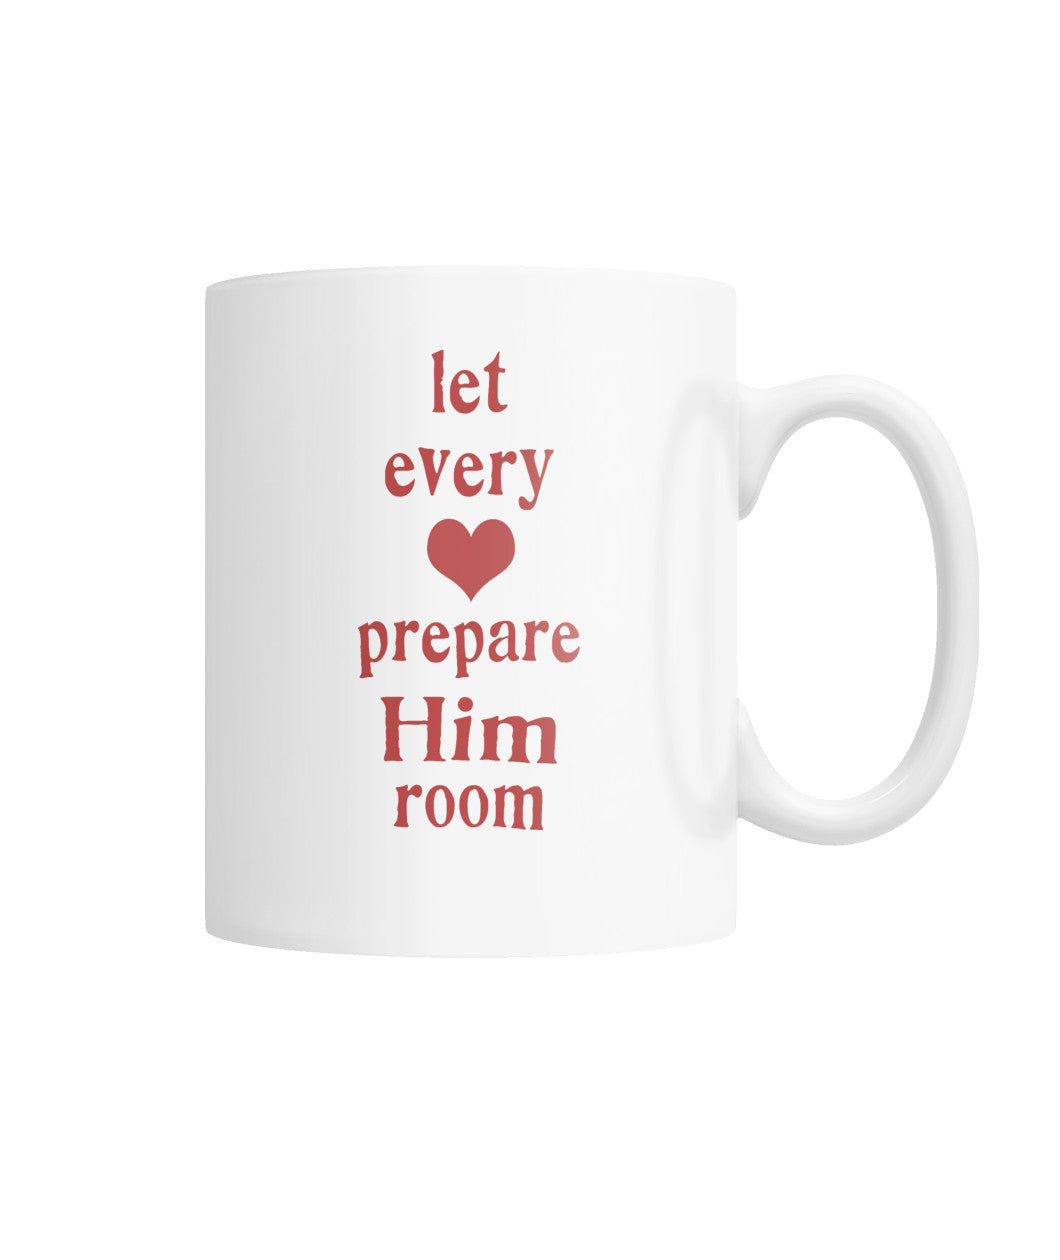 Mug (11oz) - Let Every Heart Prepare Him Room